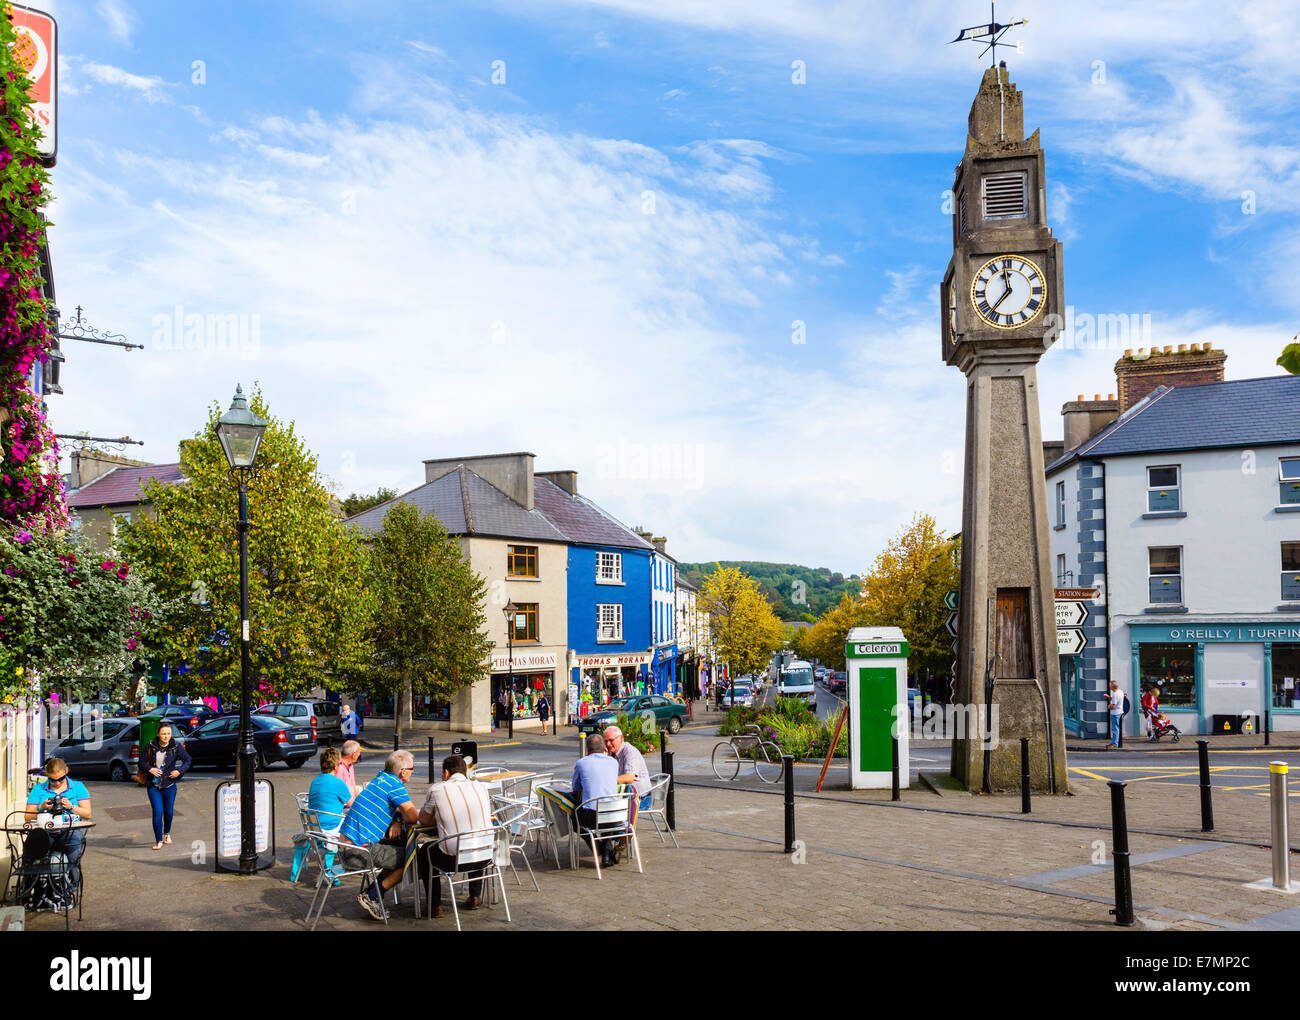 Cafe in front of the Clock Tower, The Octagon, Westport, County Mayo, Republic of Ireland - Stock Image